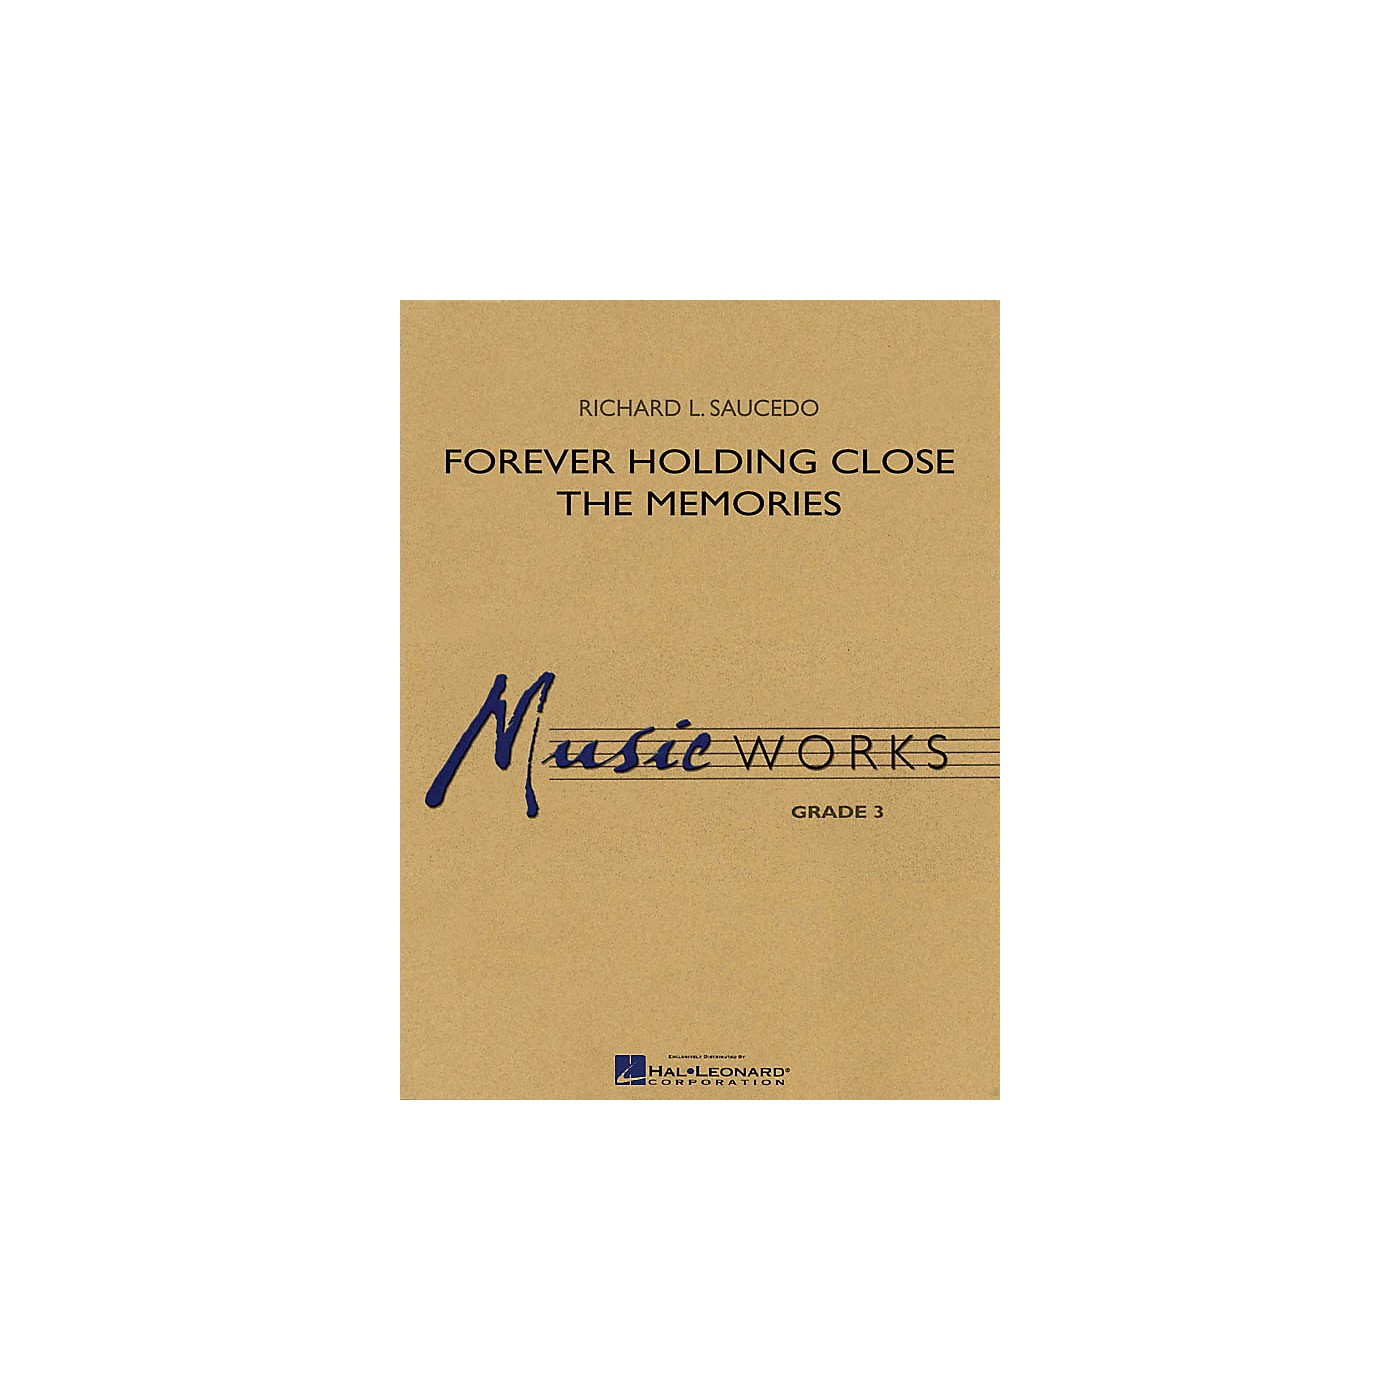 Hal Leonard Forever Holding Close the Memories Concert Band Level 3 Composed by Richard L. Saucedo thumbnail